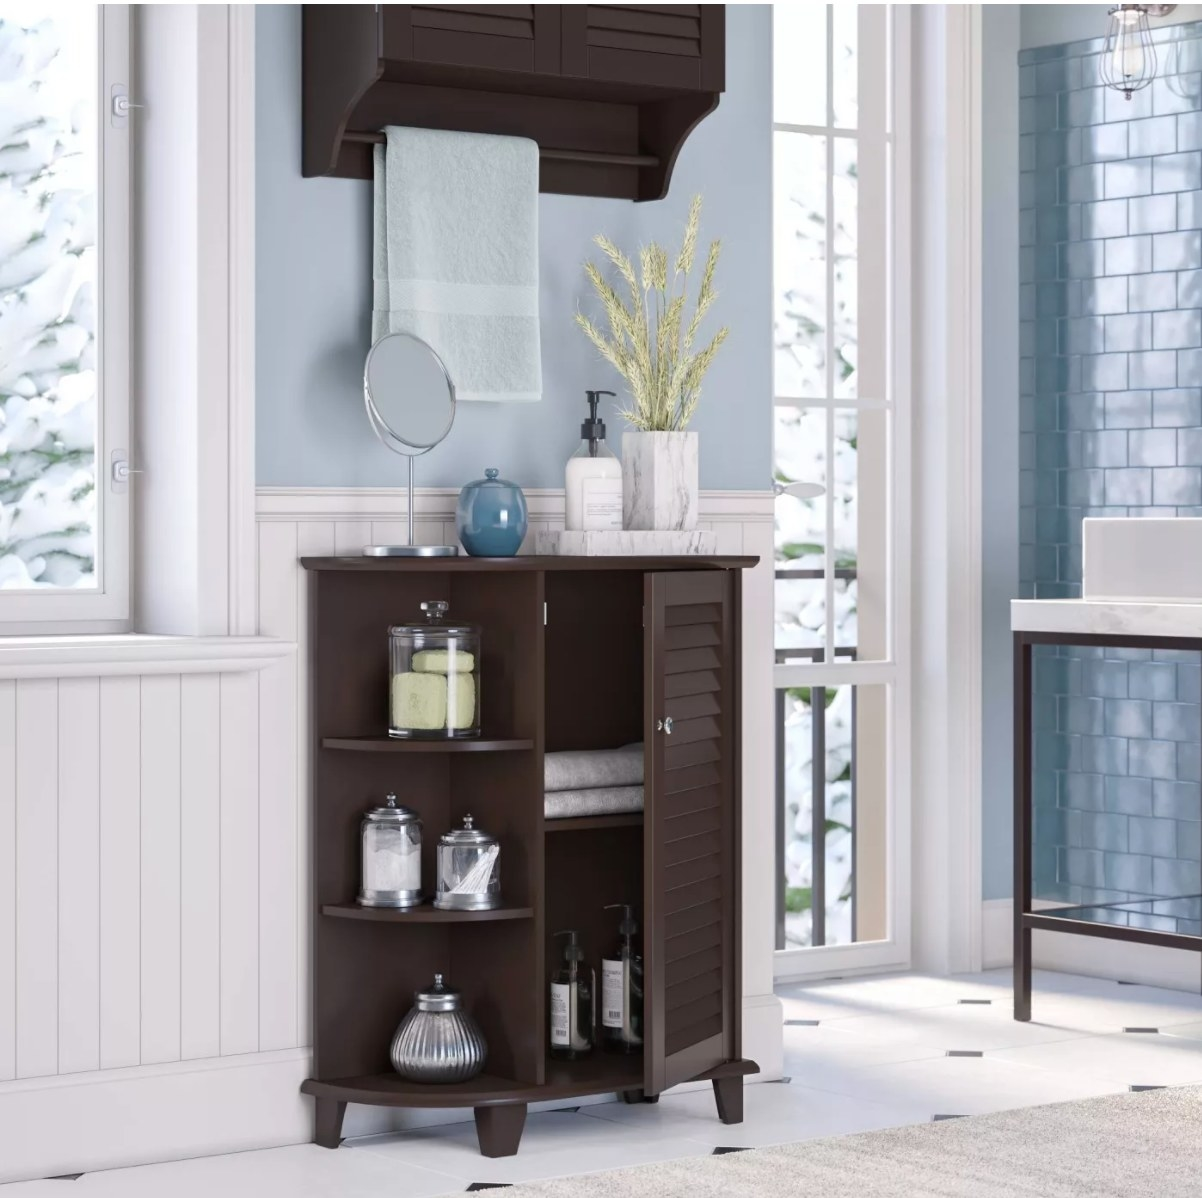 The floor cabinet with side shelves in espresso brown